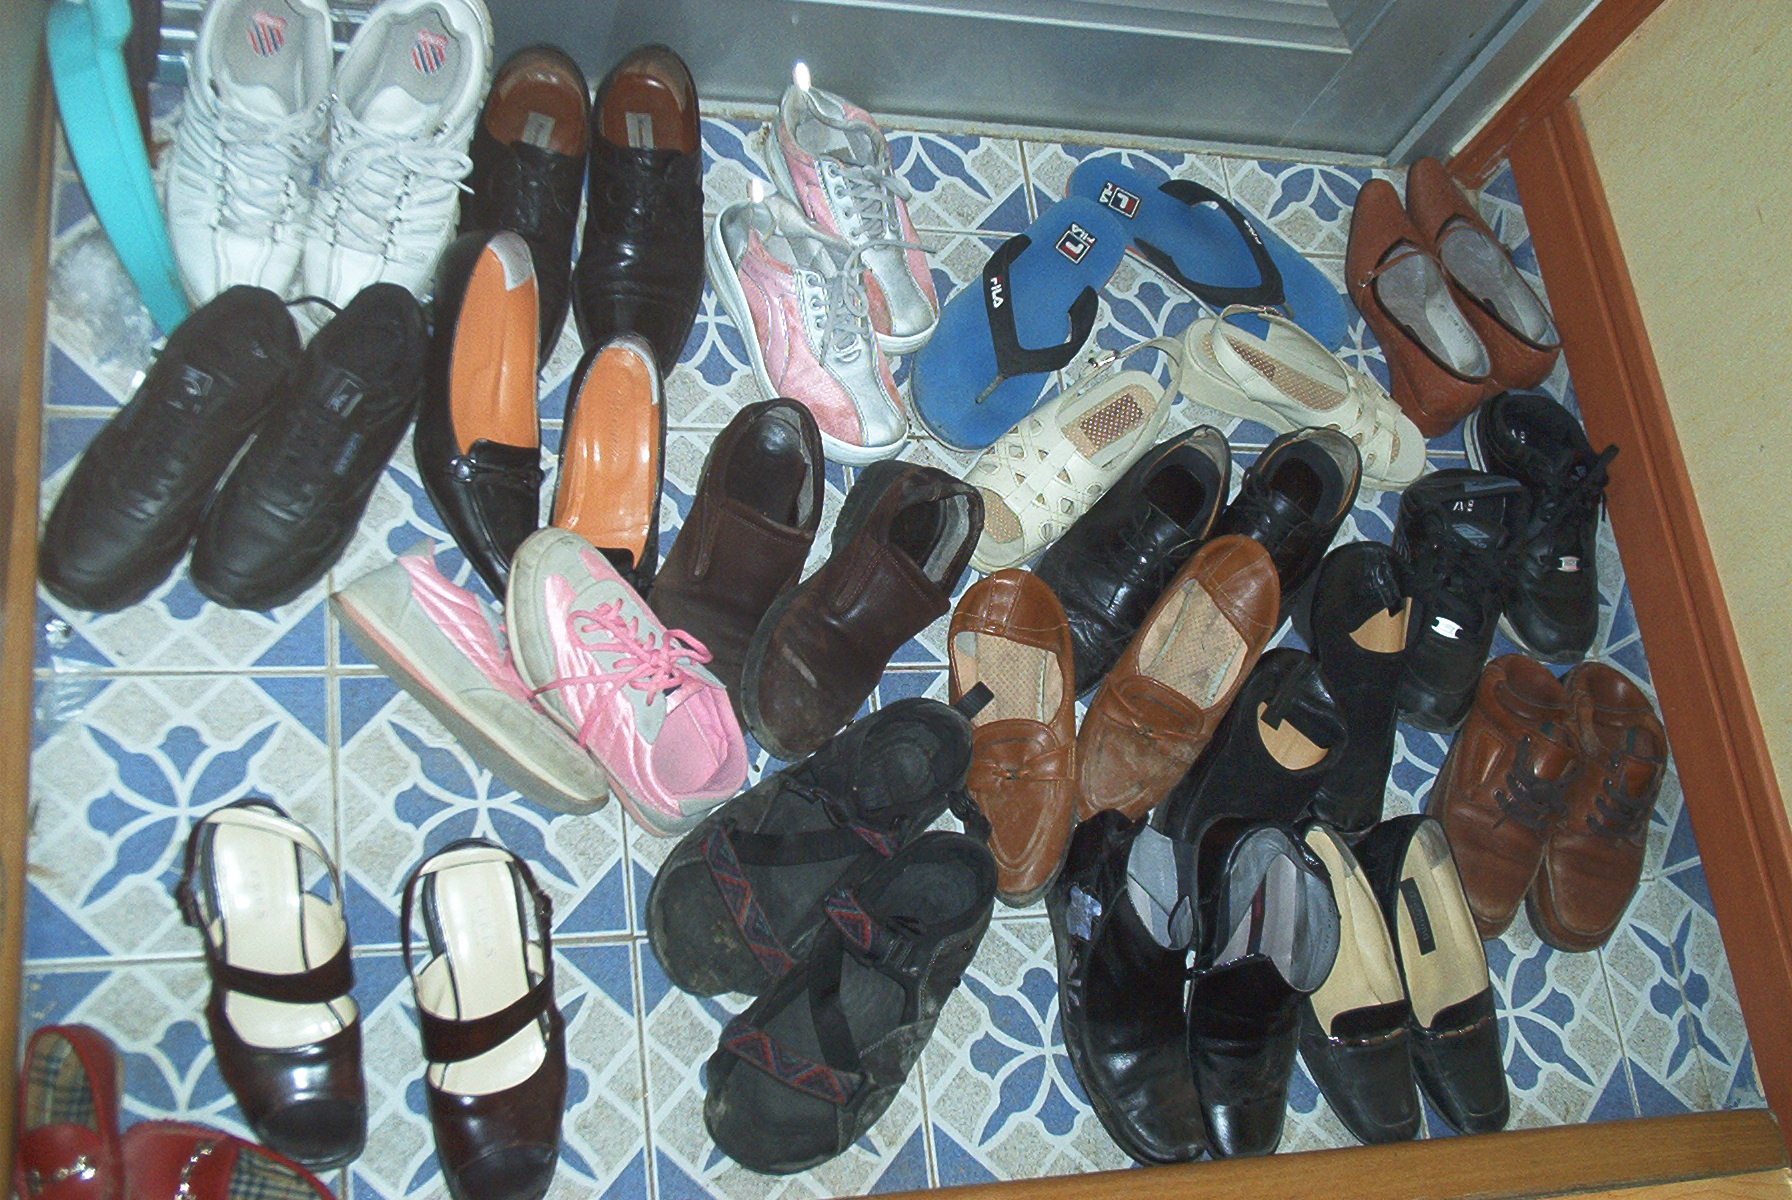 Tradition of removing shoes in home Wikipedia